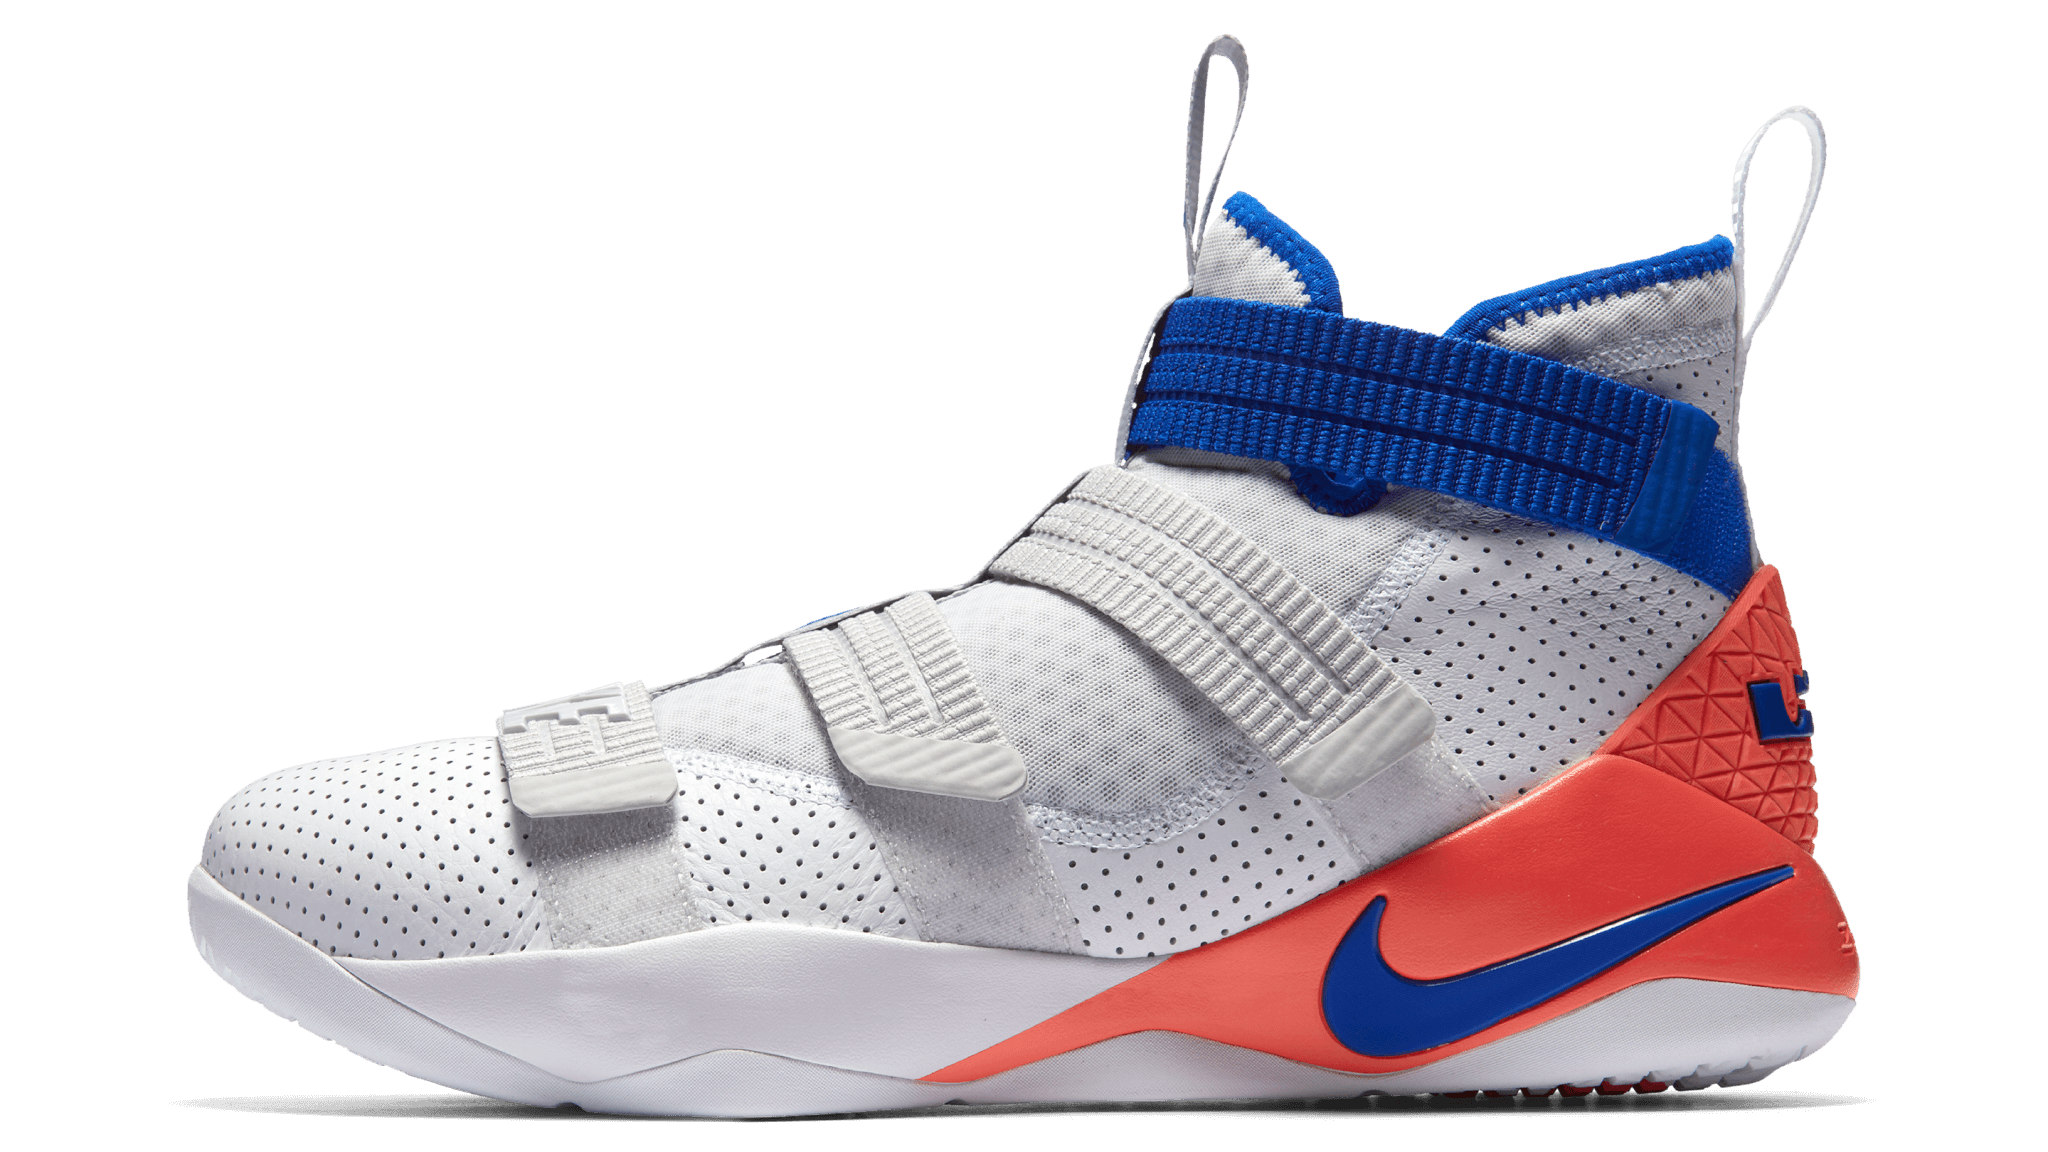 92eae313006d Nike Lebron Soldier 11 Performance Review